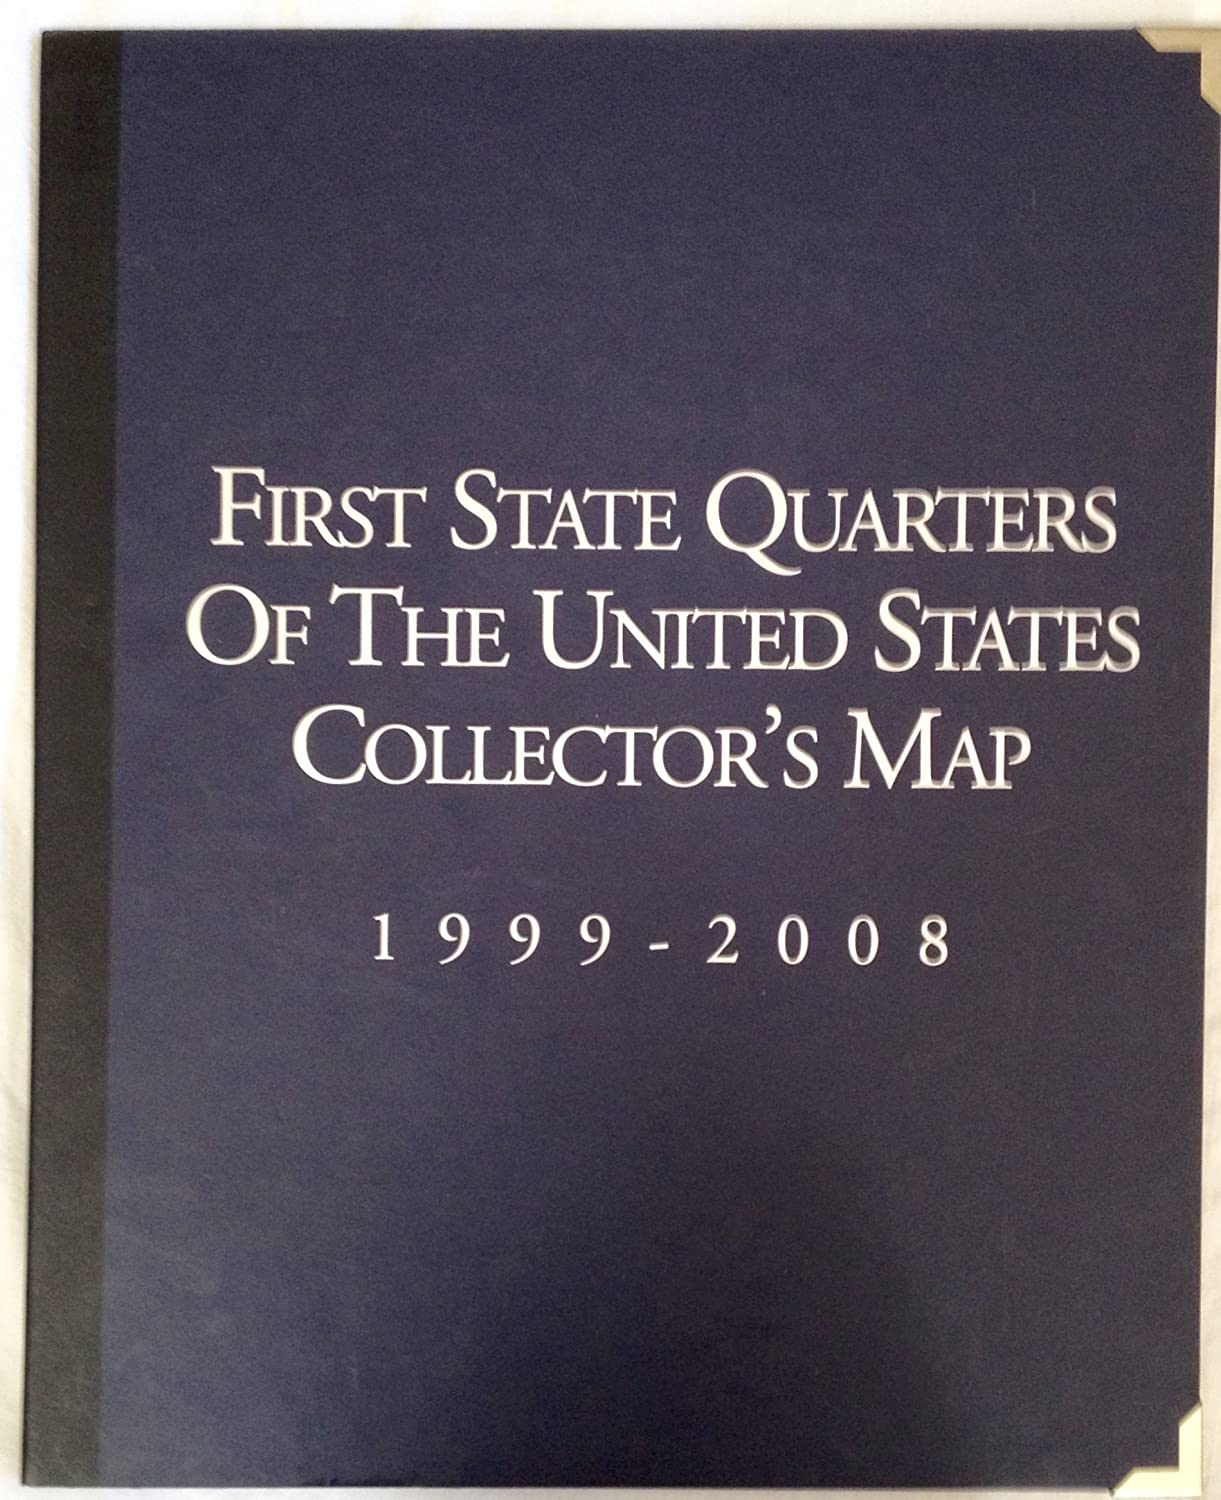 first state quarters of the united states collectors map worth Amazon.com: First State Quarters of the United States Collector's